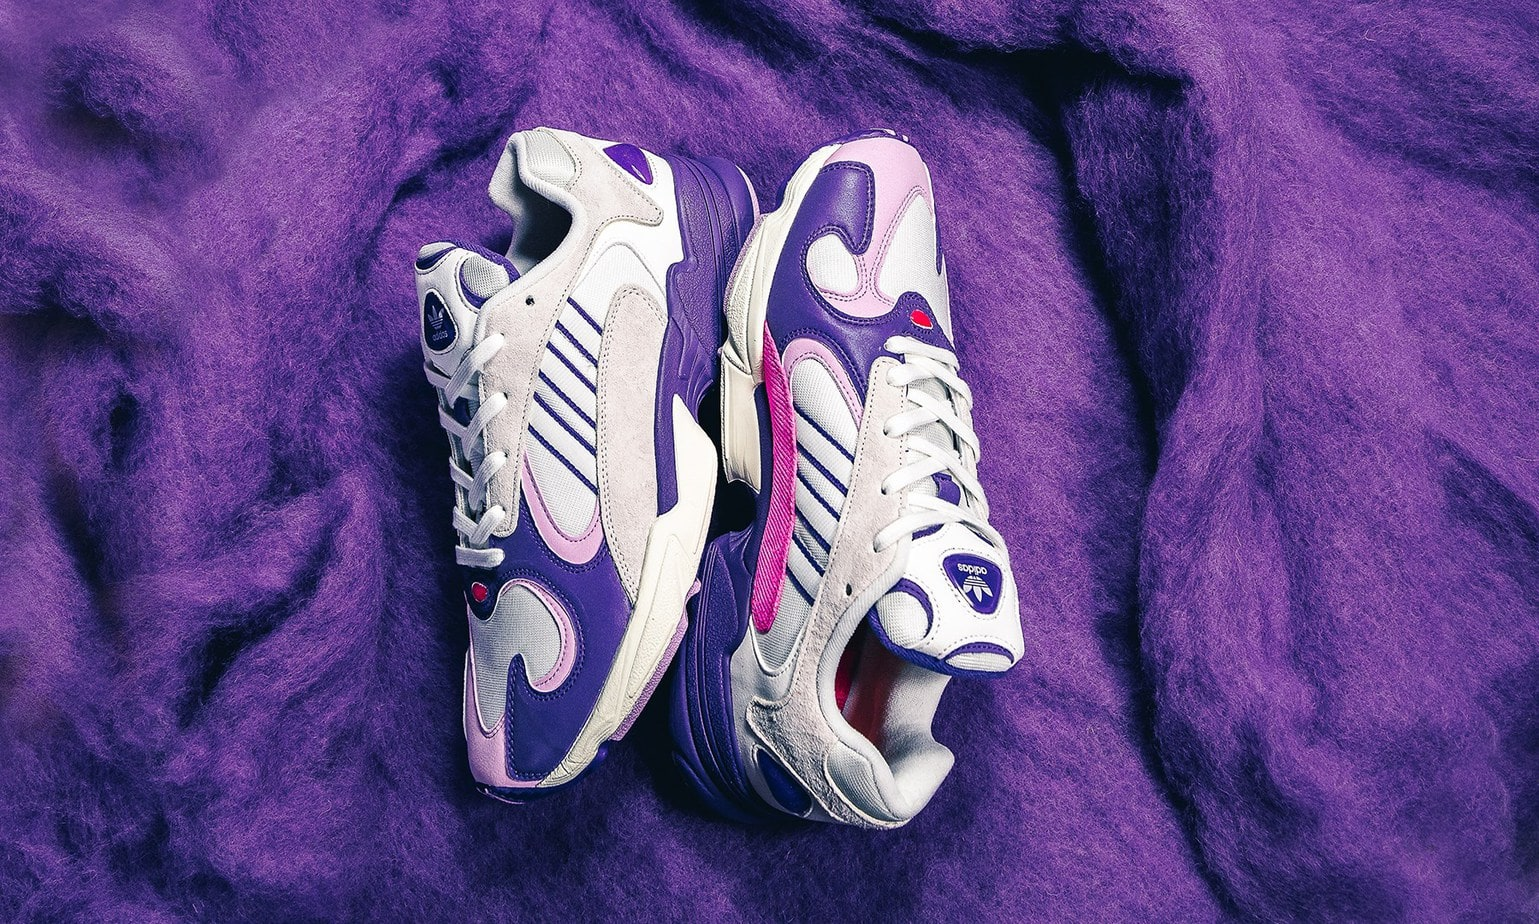 """701a0beb8951 Dragon Ball Z x adidas Yung-1 """"Frieza"""" Color  Cloud White Unity  Purple-Clear Lilac Style Code  D97048 Release Date  September 29"""